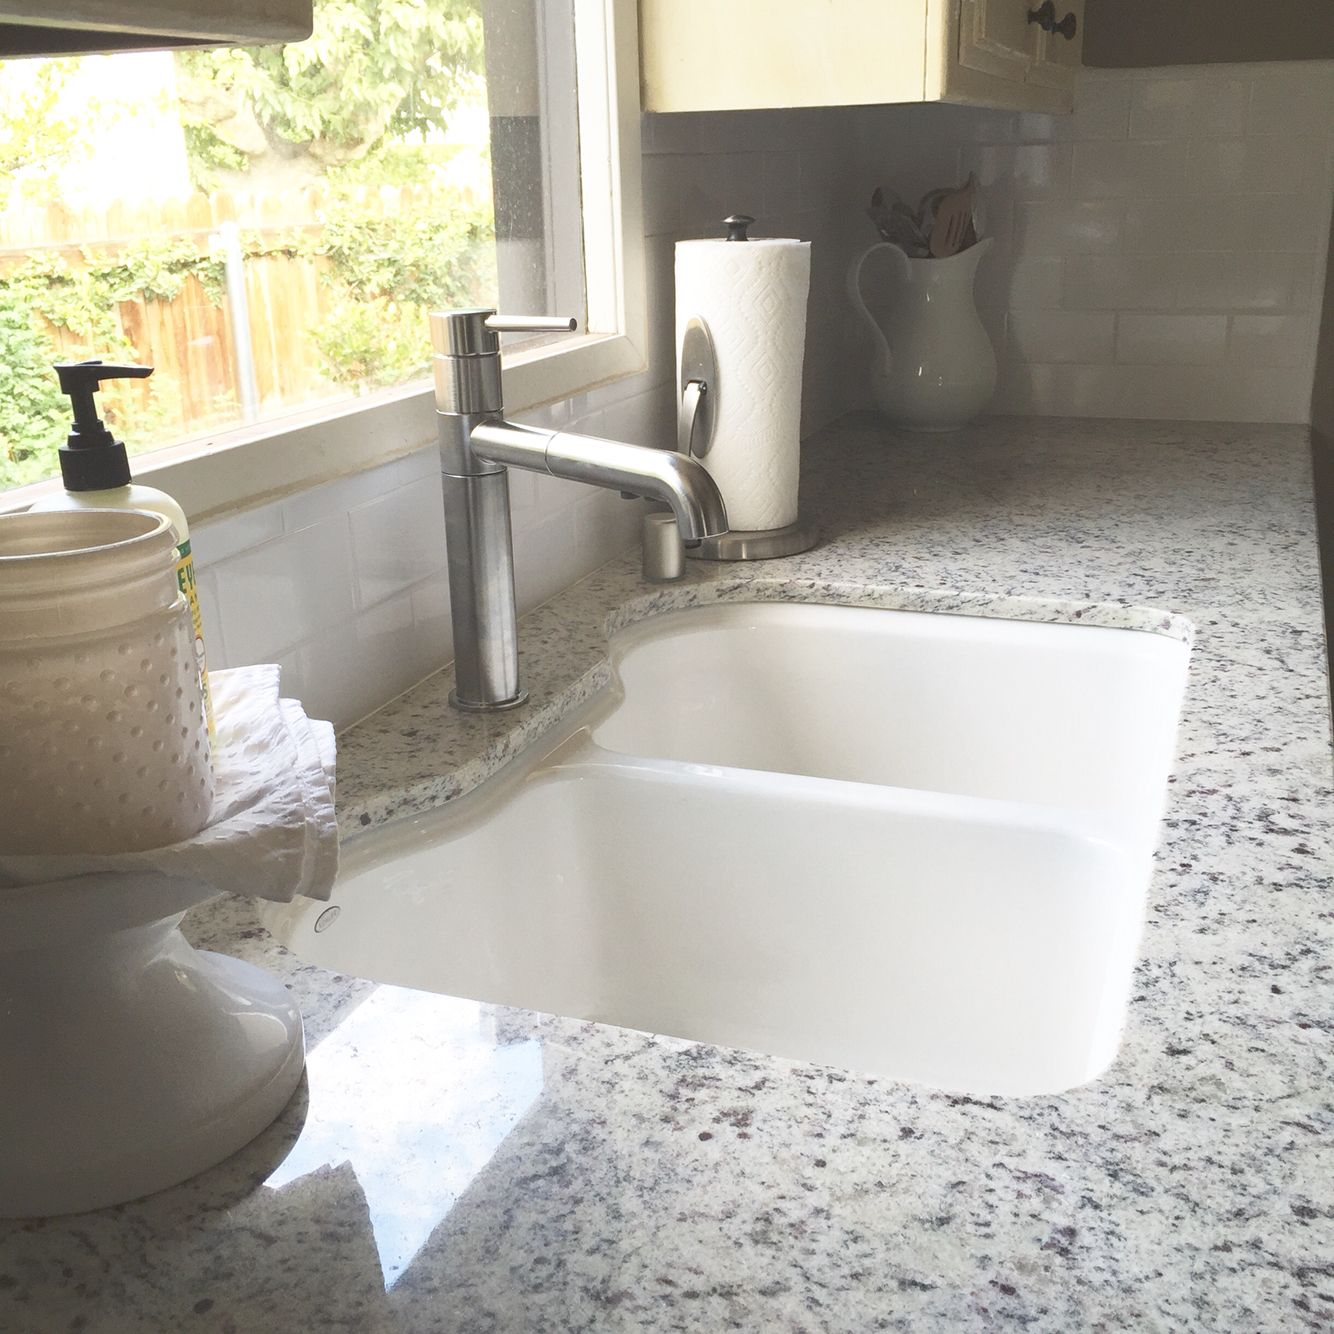 Dallas Bathroom Vanities: Pin By LystHouse On Dallas Homes For Sale And Dallas